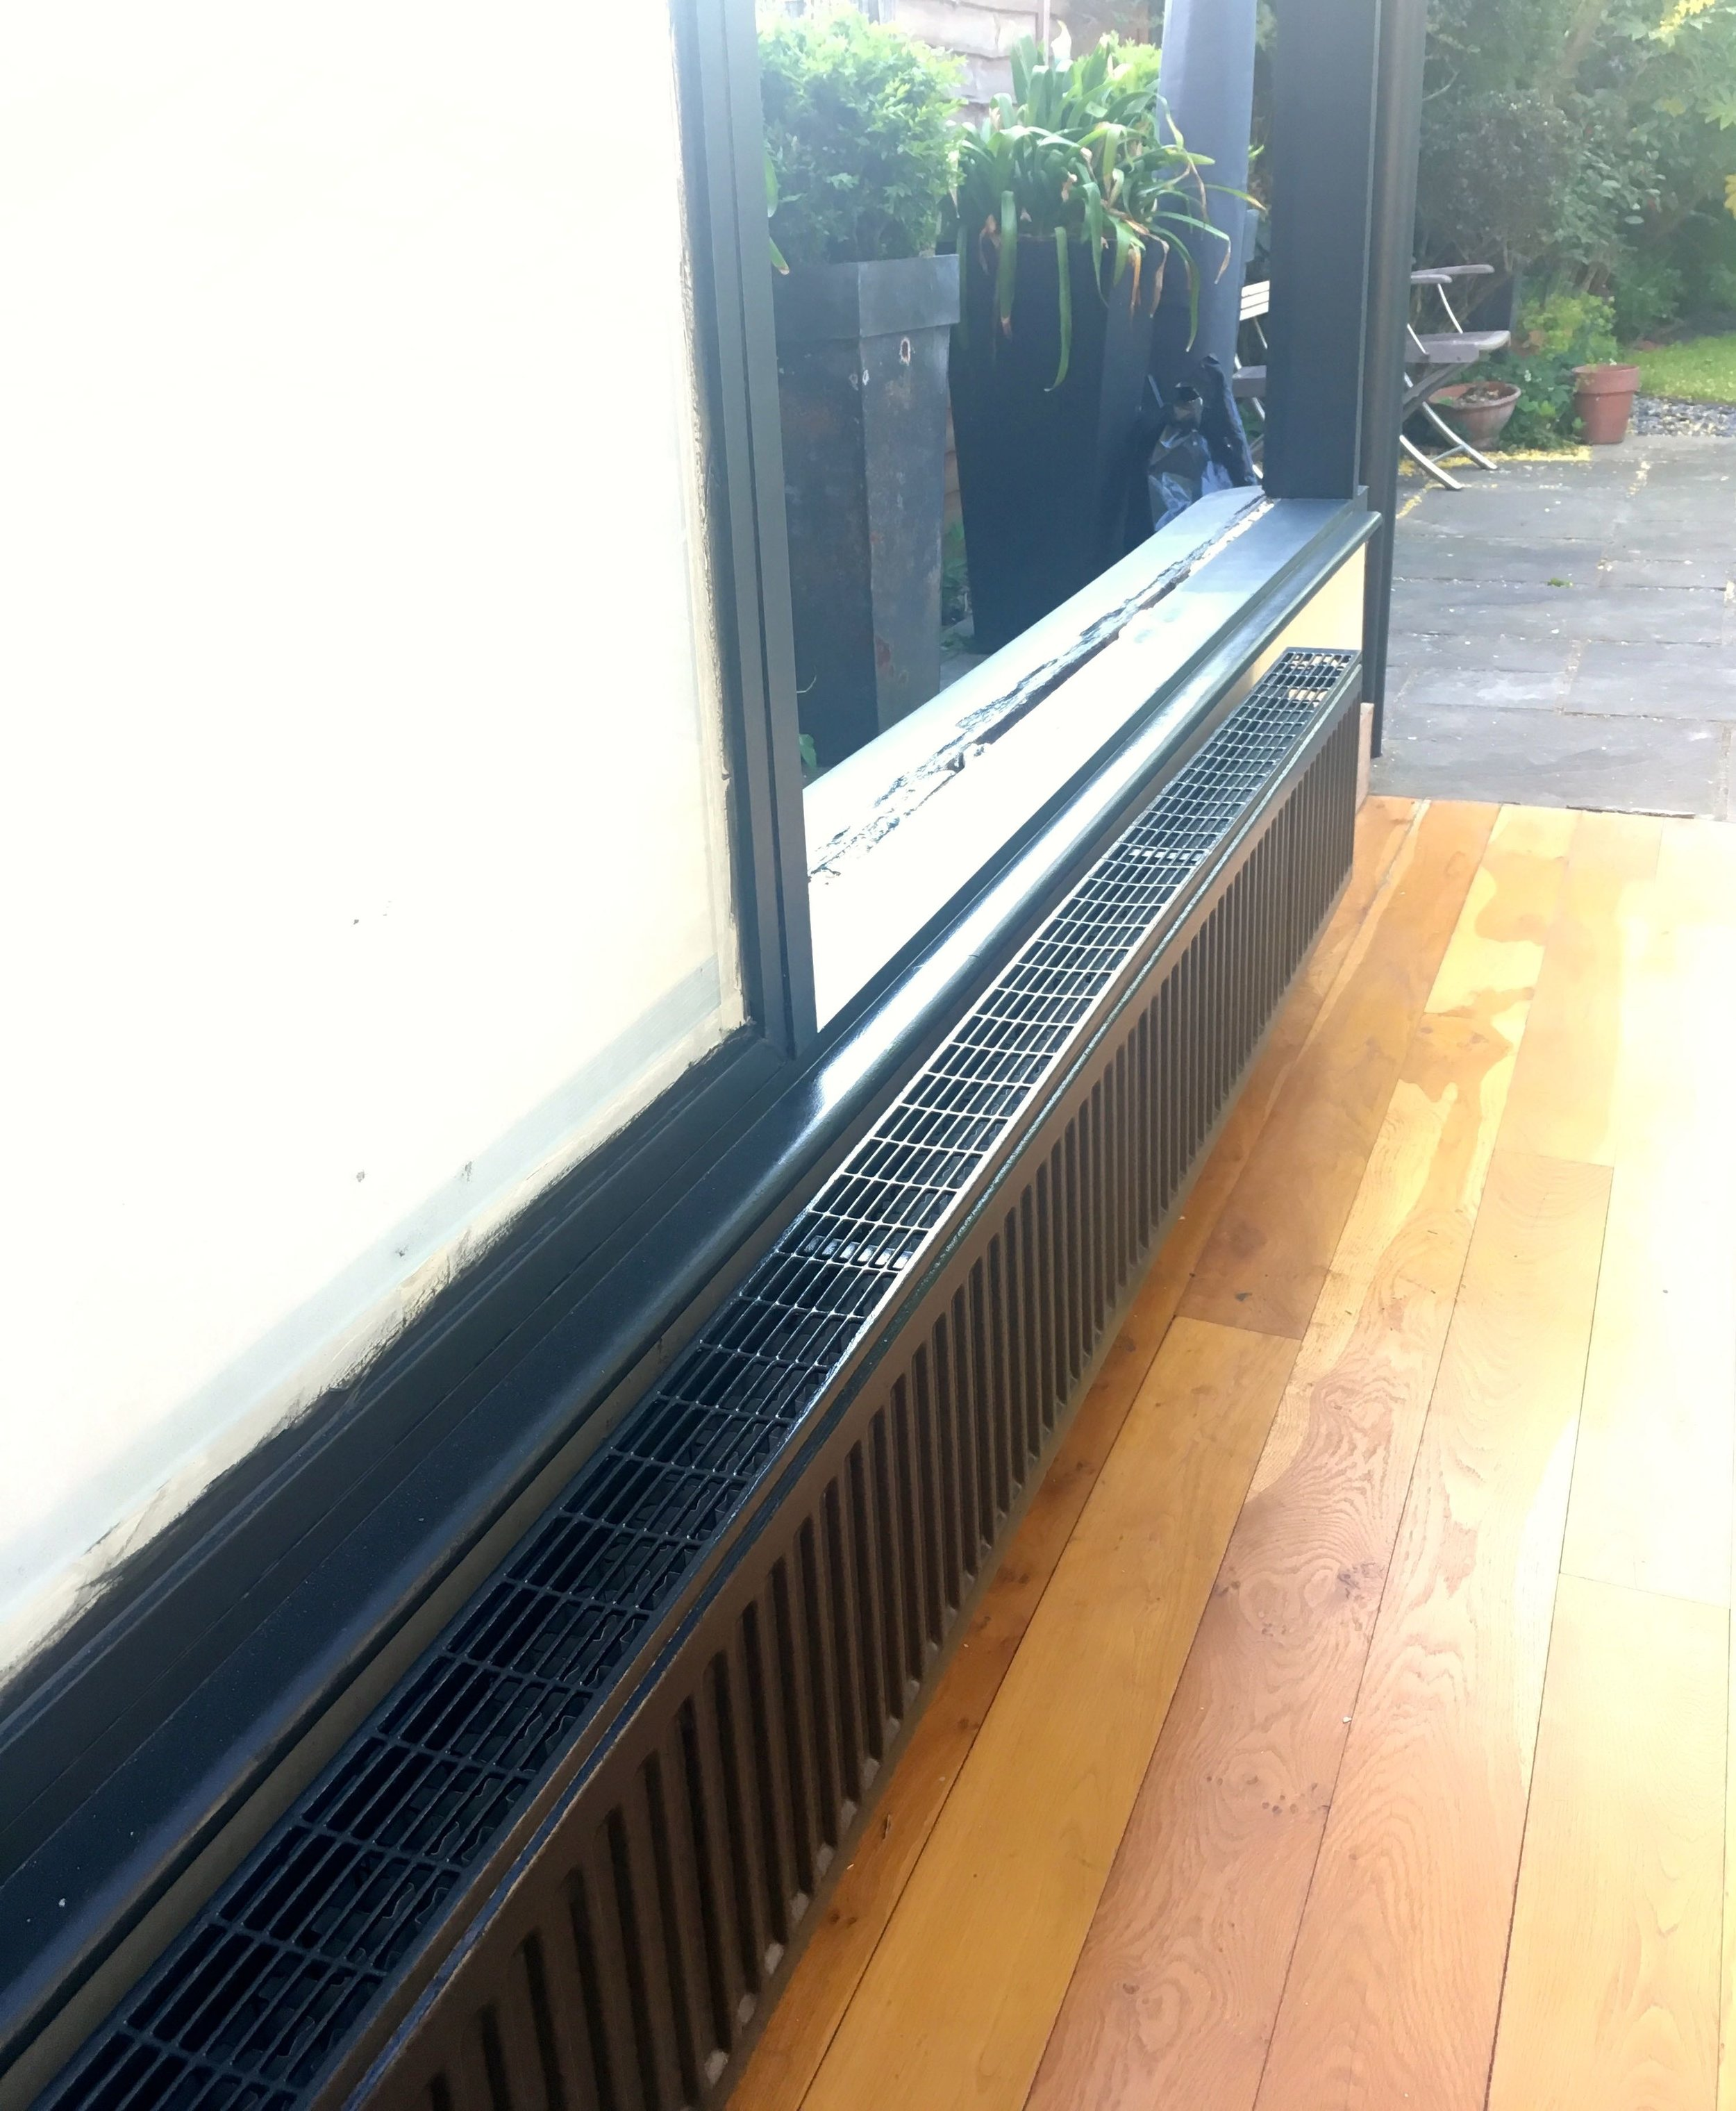 OUR NEWLY PAINTED GREY RADIATOR